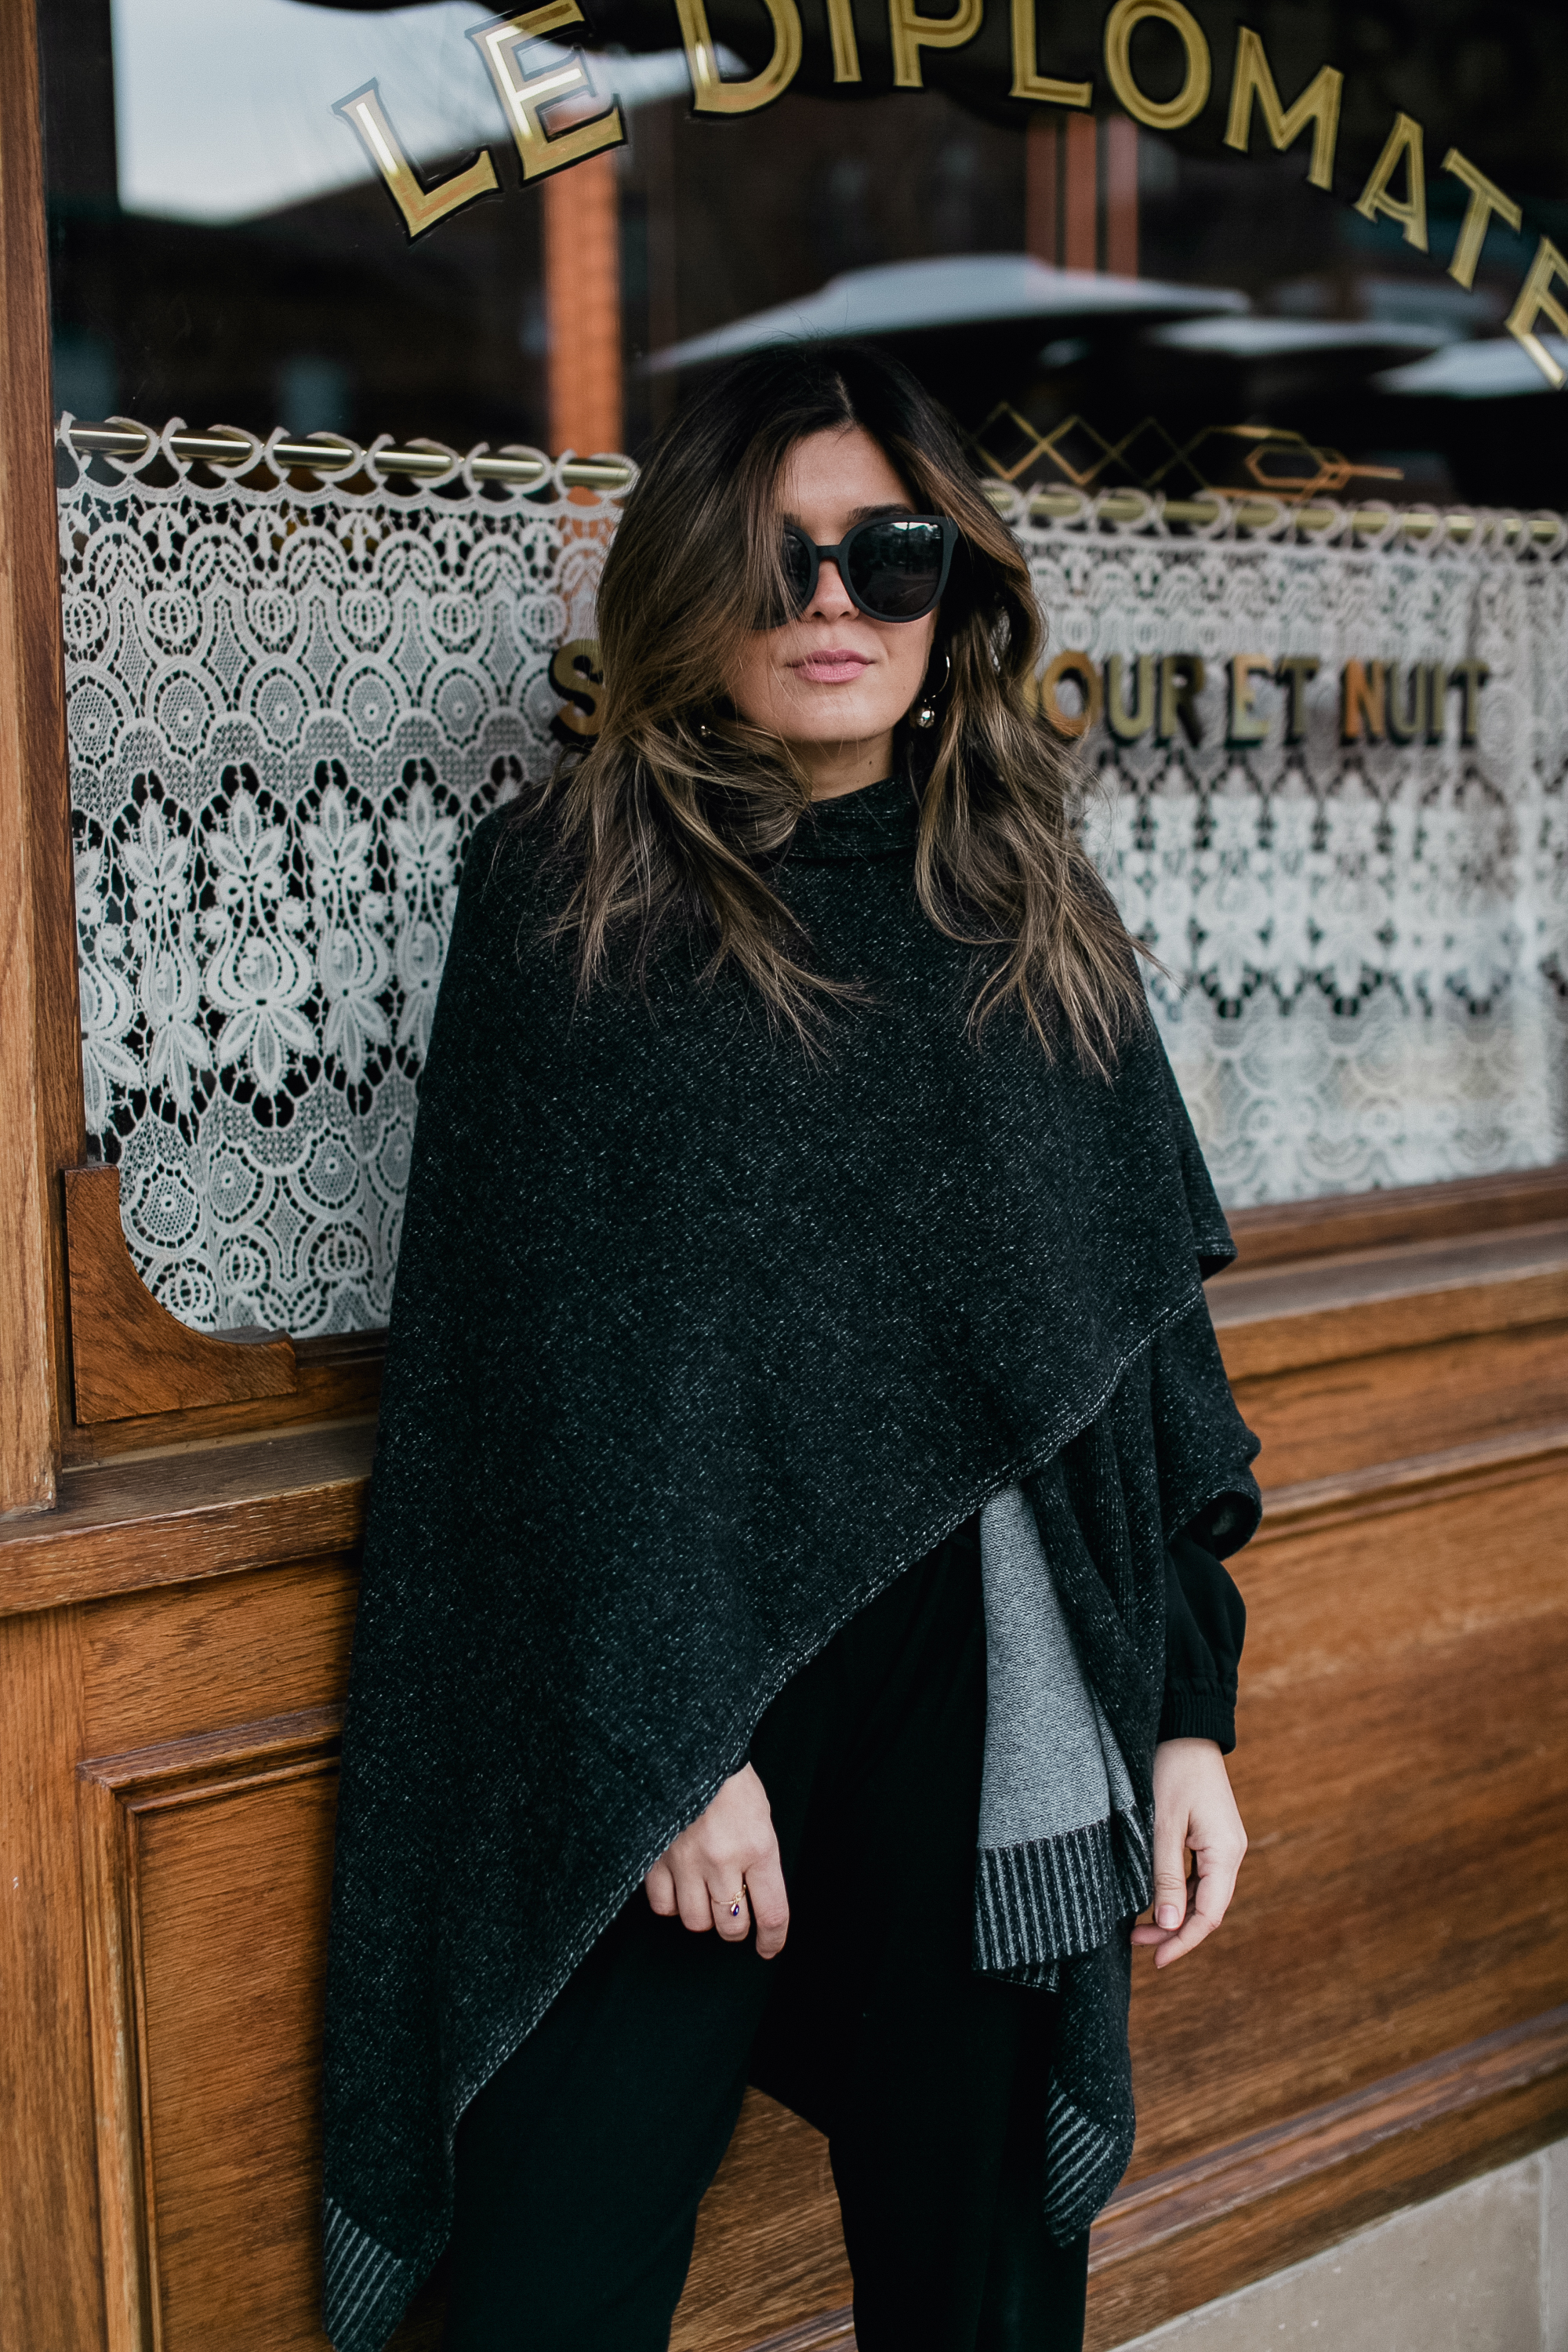 Blogger Sara Azani of Style MBA, a petite Brunette woman with blonde highlights is photographed in front of Le Diplomate restaurant in Washington DC wearing an all-black outfit featuring Quay Australia black sunglasses, Stuart Weitzman black strappy heels, a black Gucci bag, black cashmere flannel draw-string pants, and a silky black bomber jacket layered with a cozy cashmere cape all by Lafayette 148.